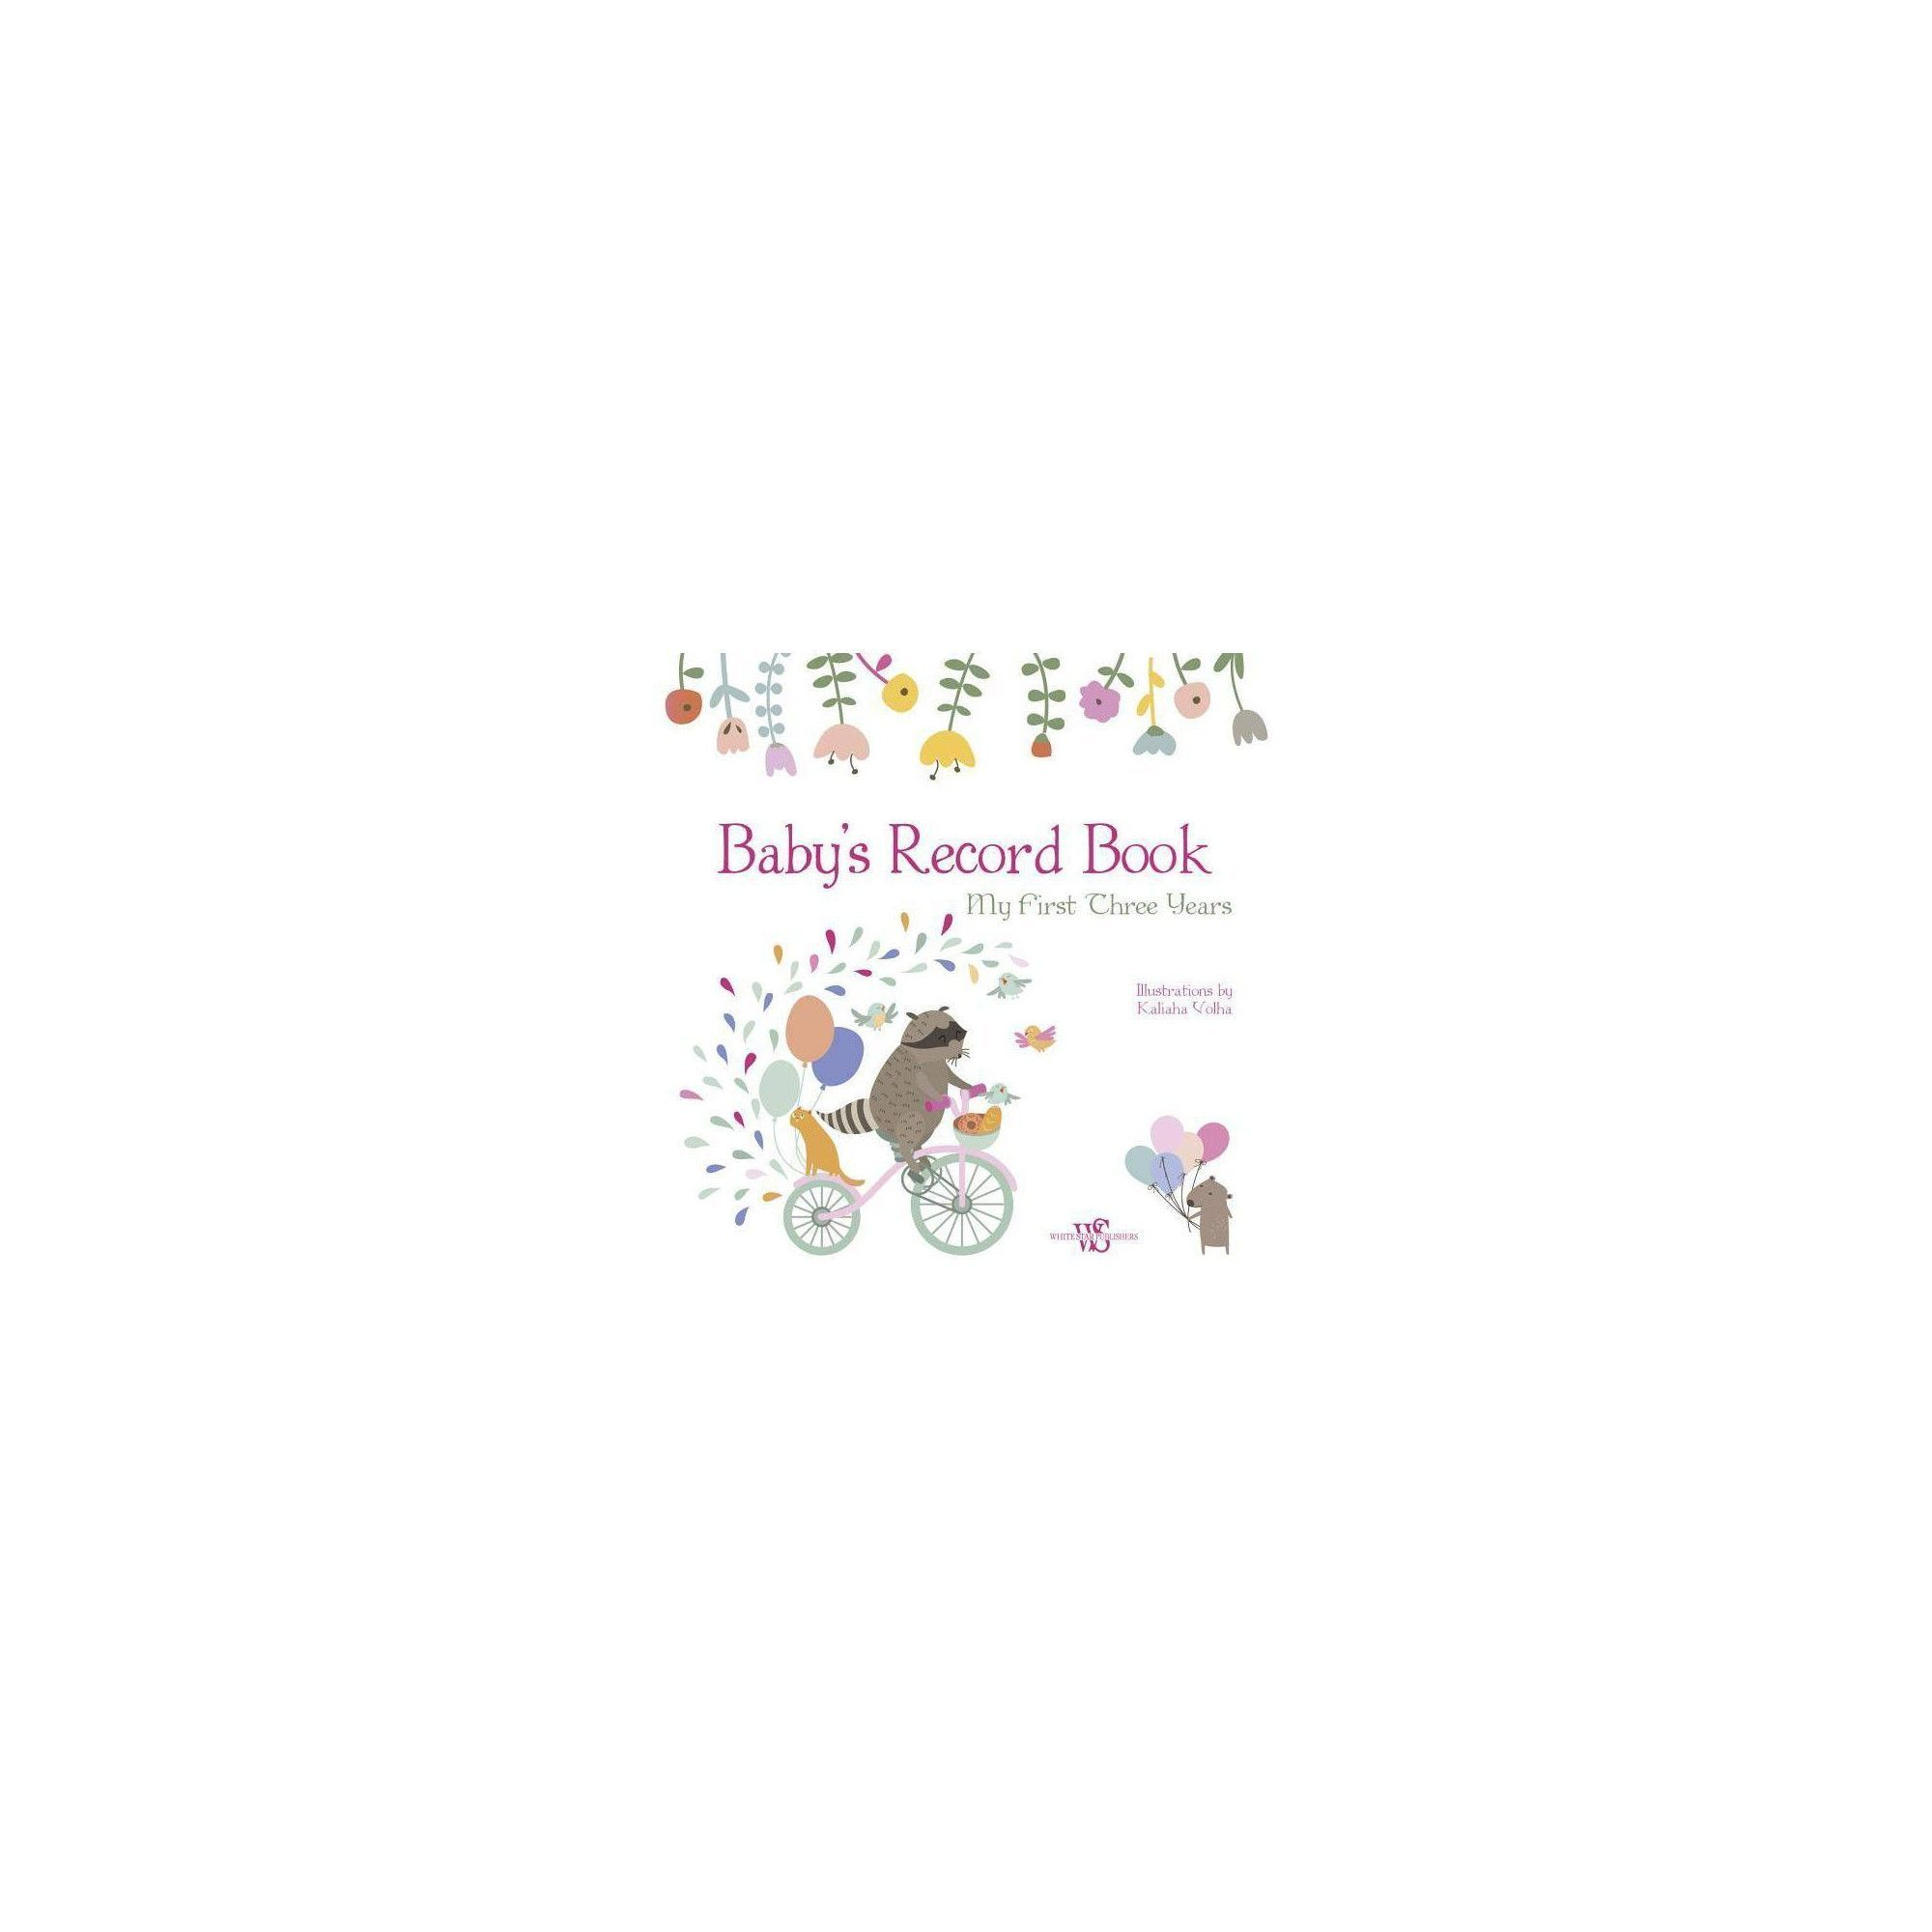 Baby's Record Book (Girl) - (Hardcover) #babyrecordbook Baby's Record Book (Girl) - (Hardcover) #babyrecordbook Baby's Record Book (Girl) - (Hardcover) #babyrecordbook Baby's Record Book (Girl) - (Hardcover) #babyrecordbook